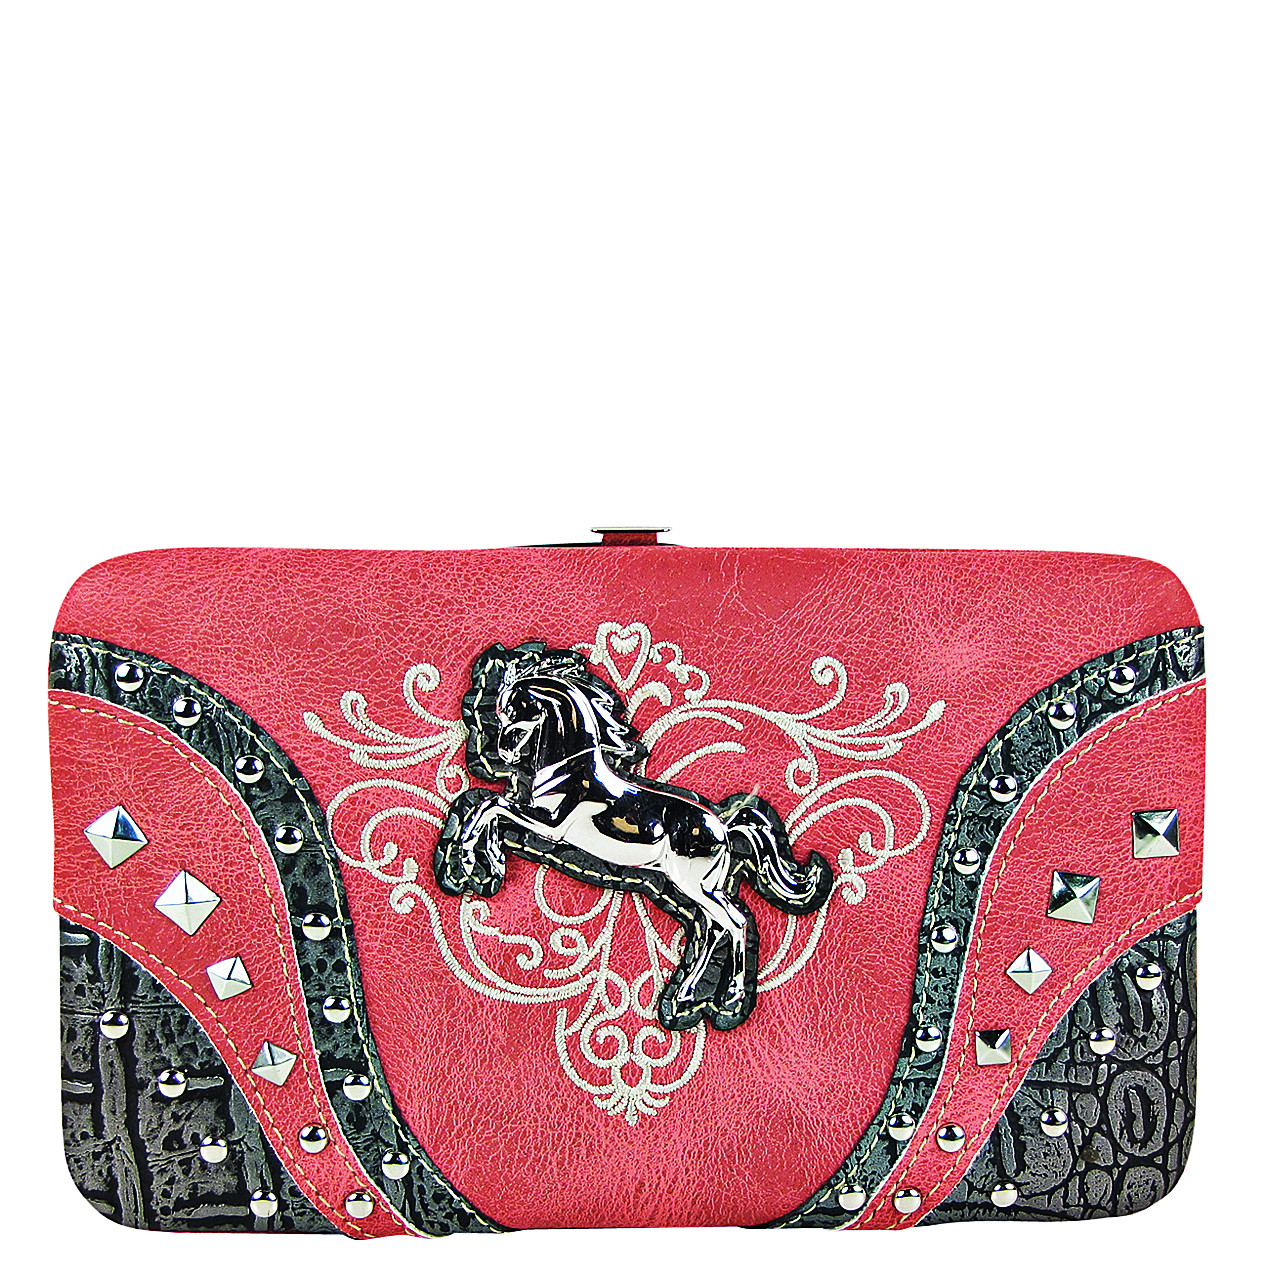 HOT PINK STITCHED TOOLED STUDDED HORSE LOOK FLAT THICK WALLET FW2-12126HPK